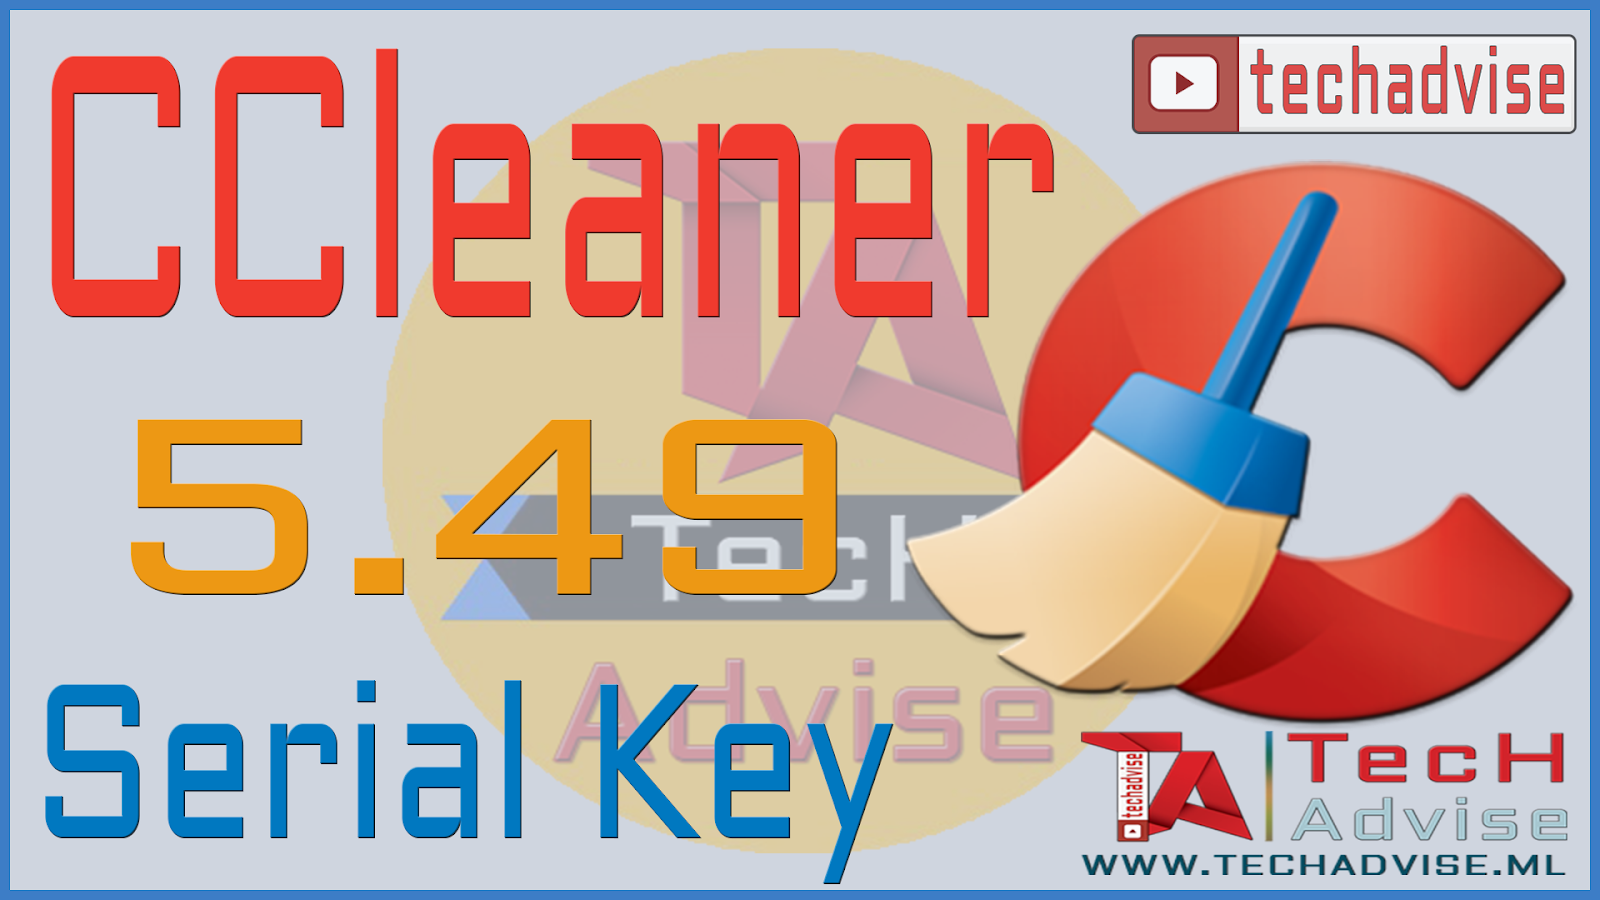 ccleaner pro license key and name